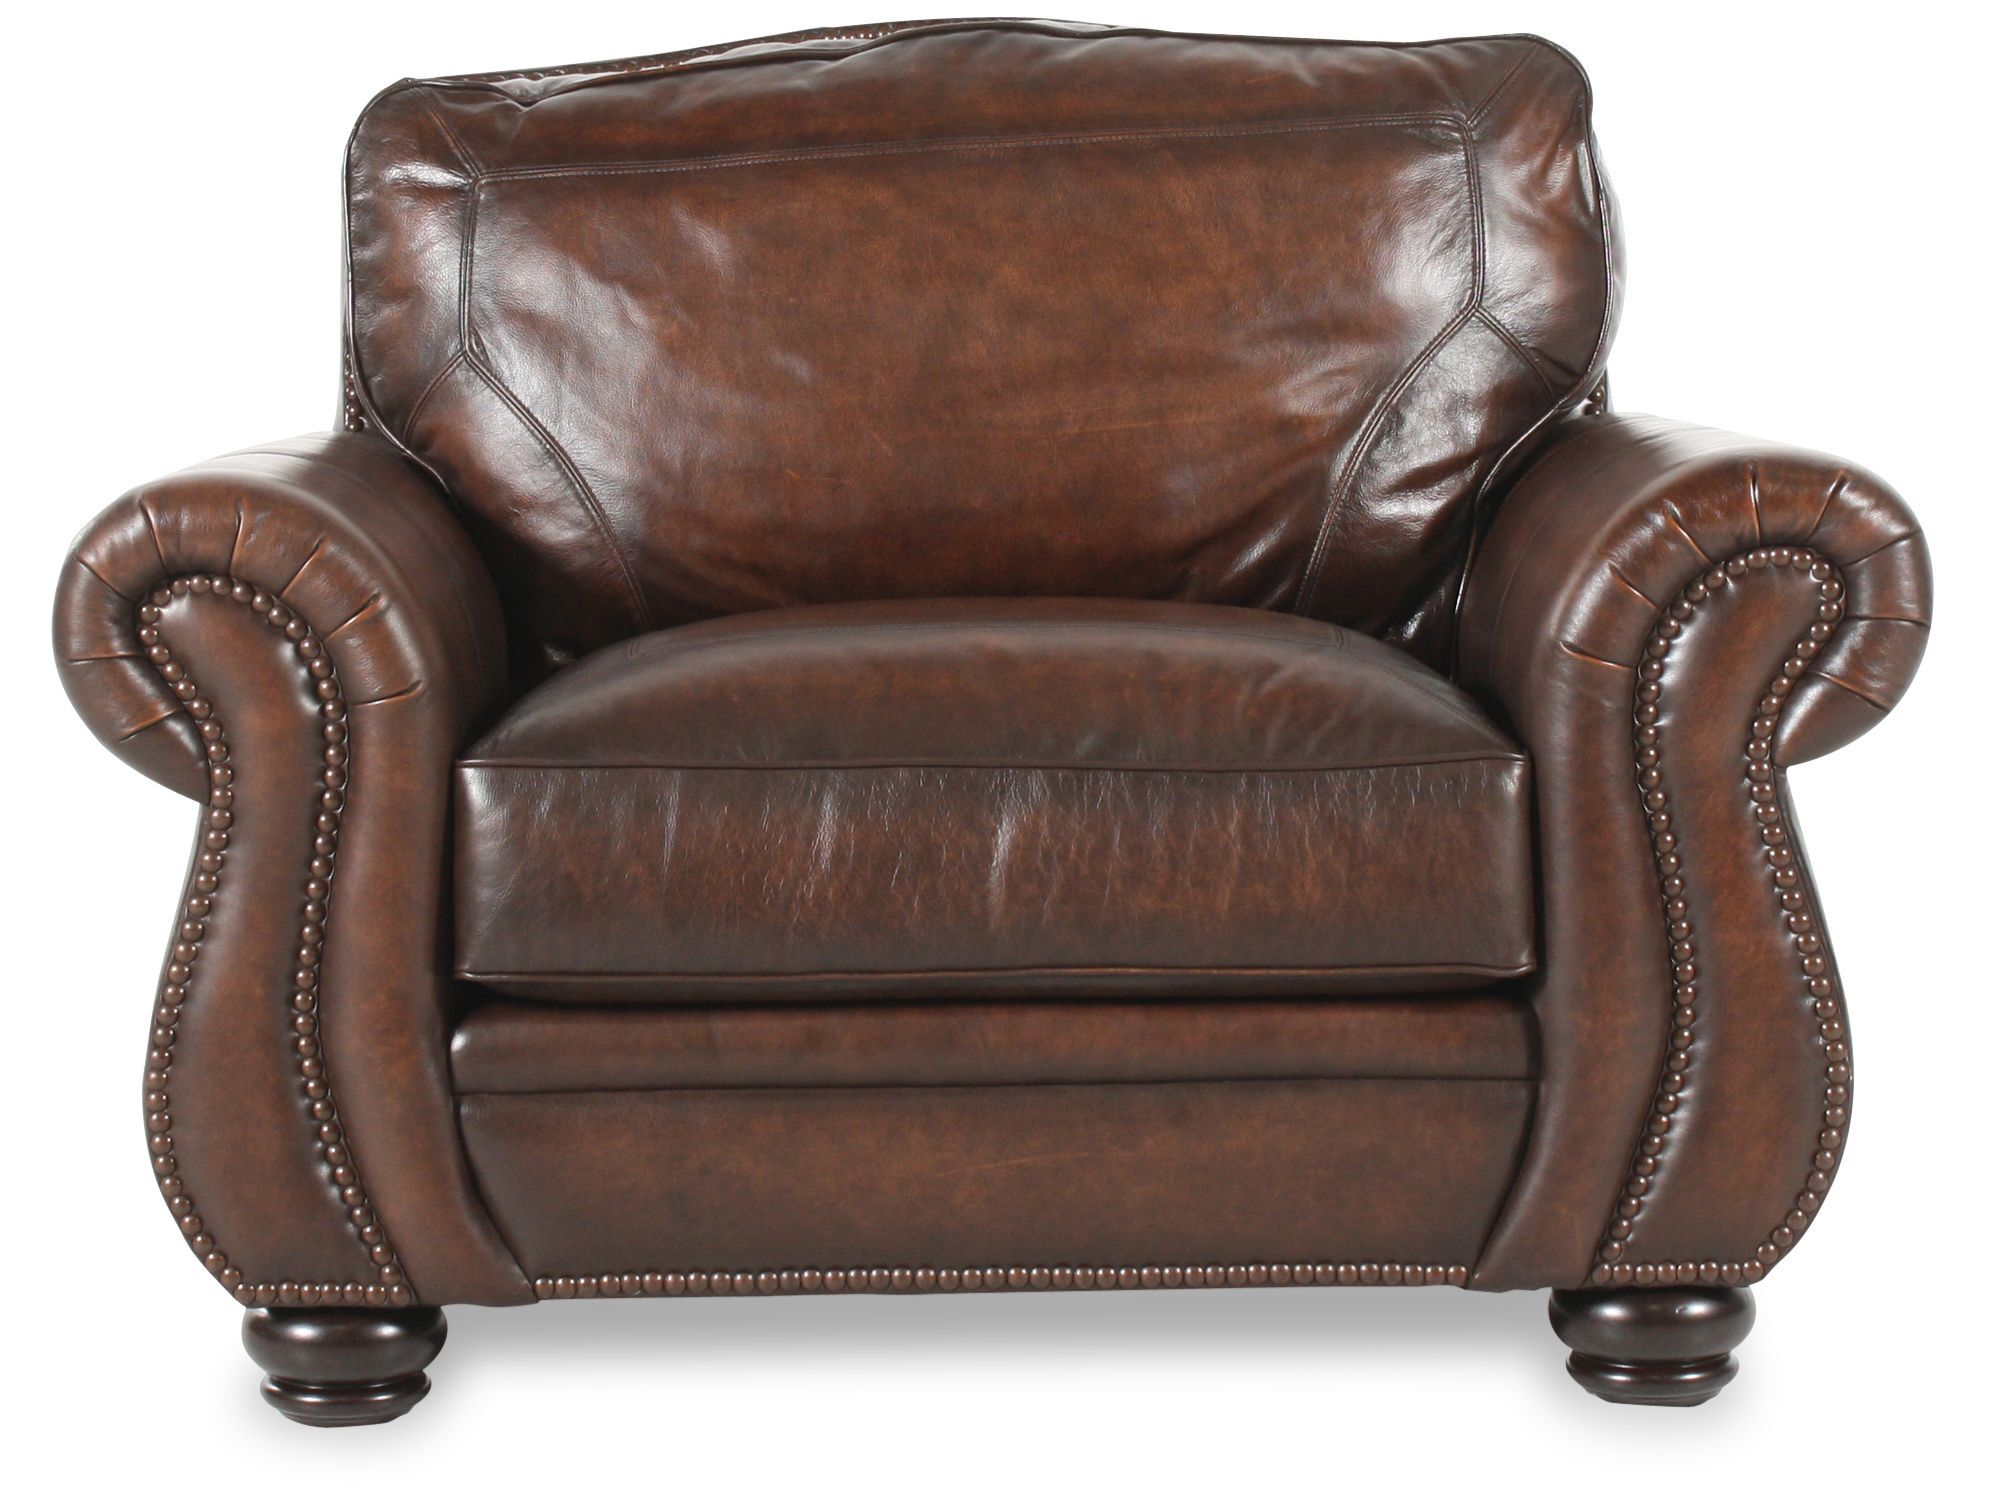 bernhardt brown leather club chair circle furniture chairs breckenridge mathis brothers